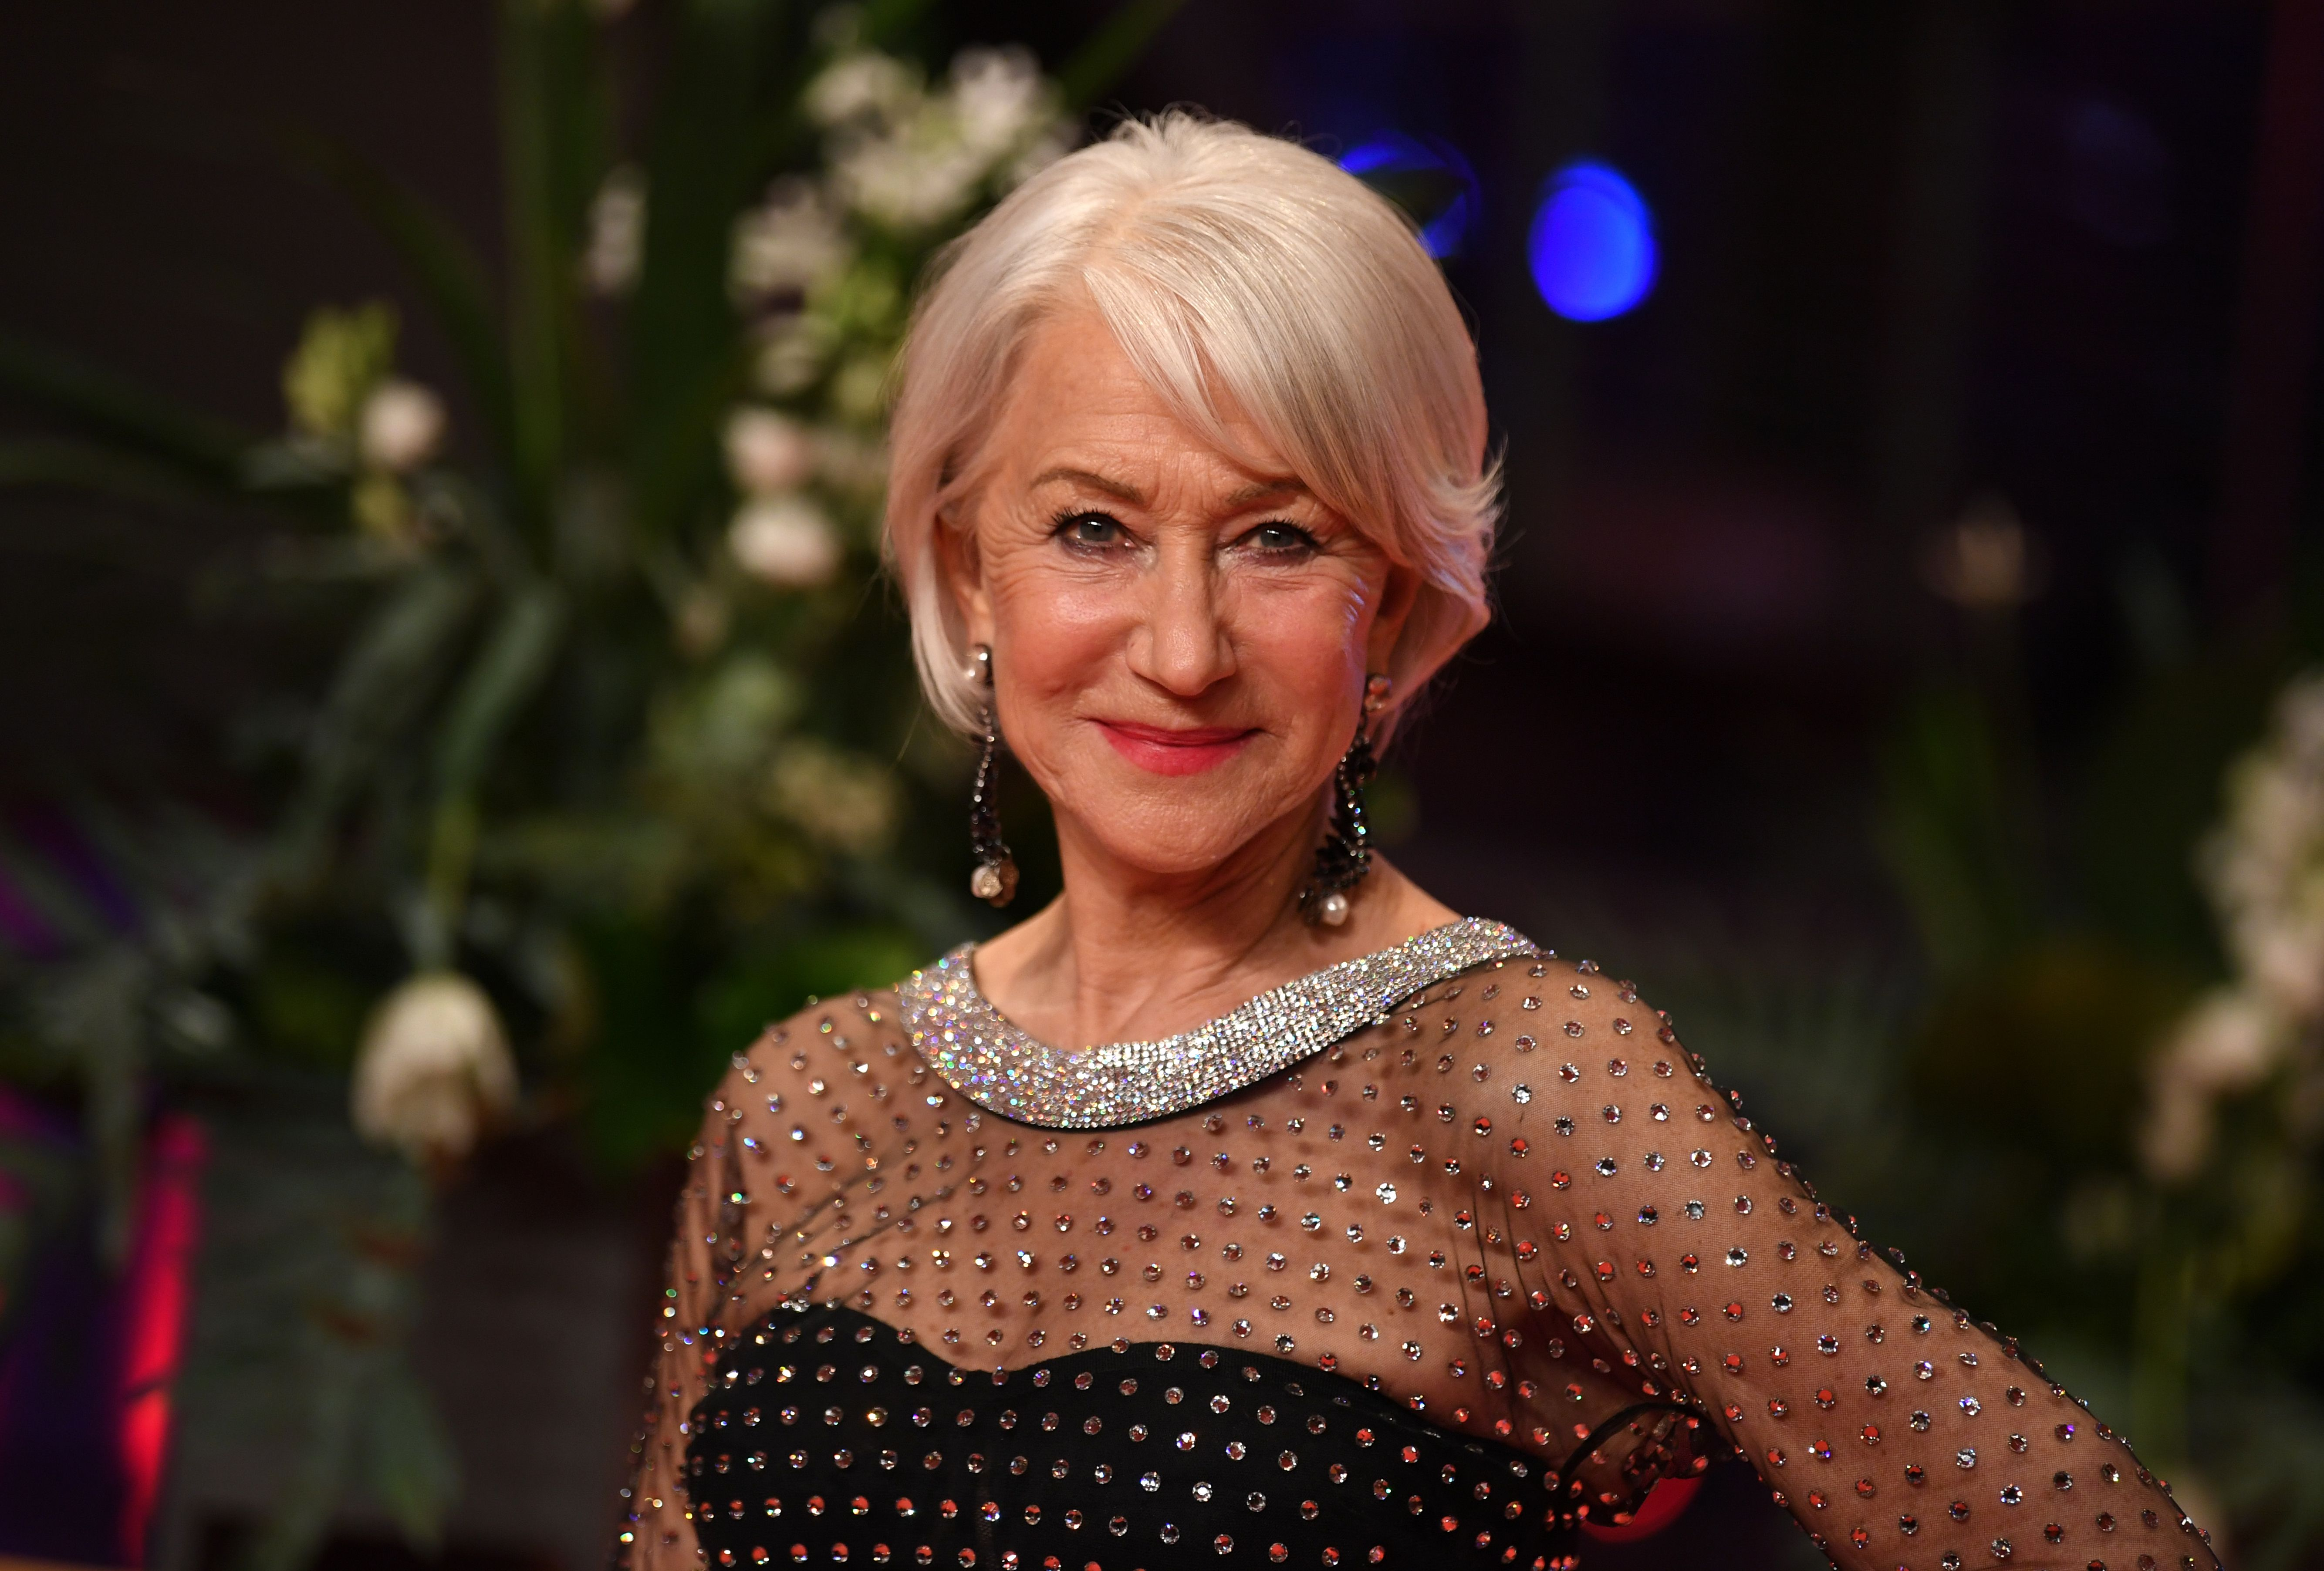 Helen Mirren at The International Film Festival on February 27, 2020   Photo: Getty Images